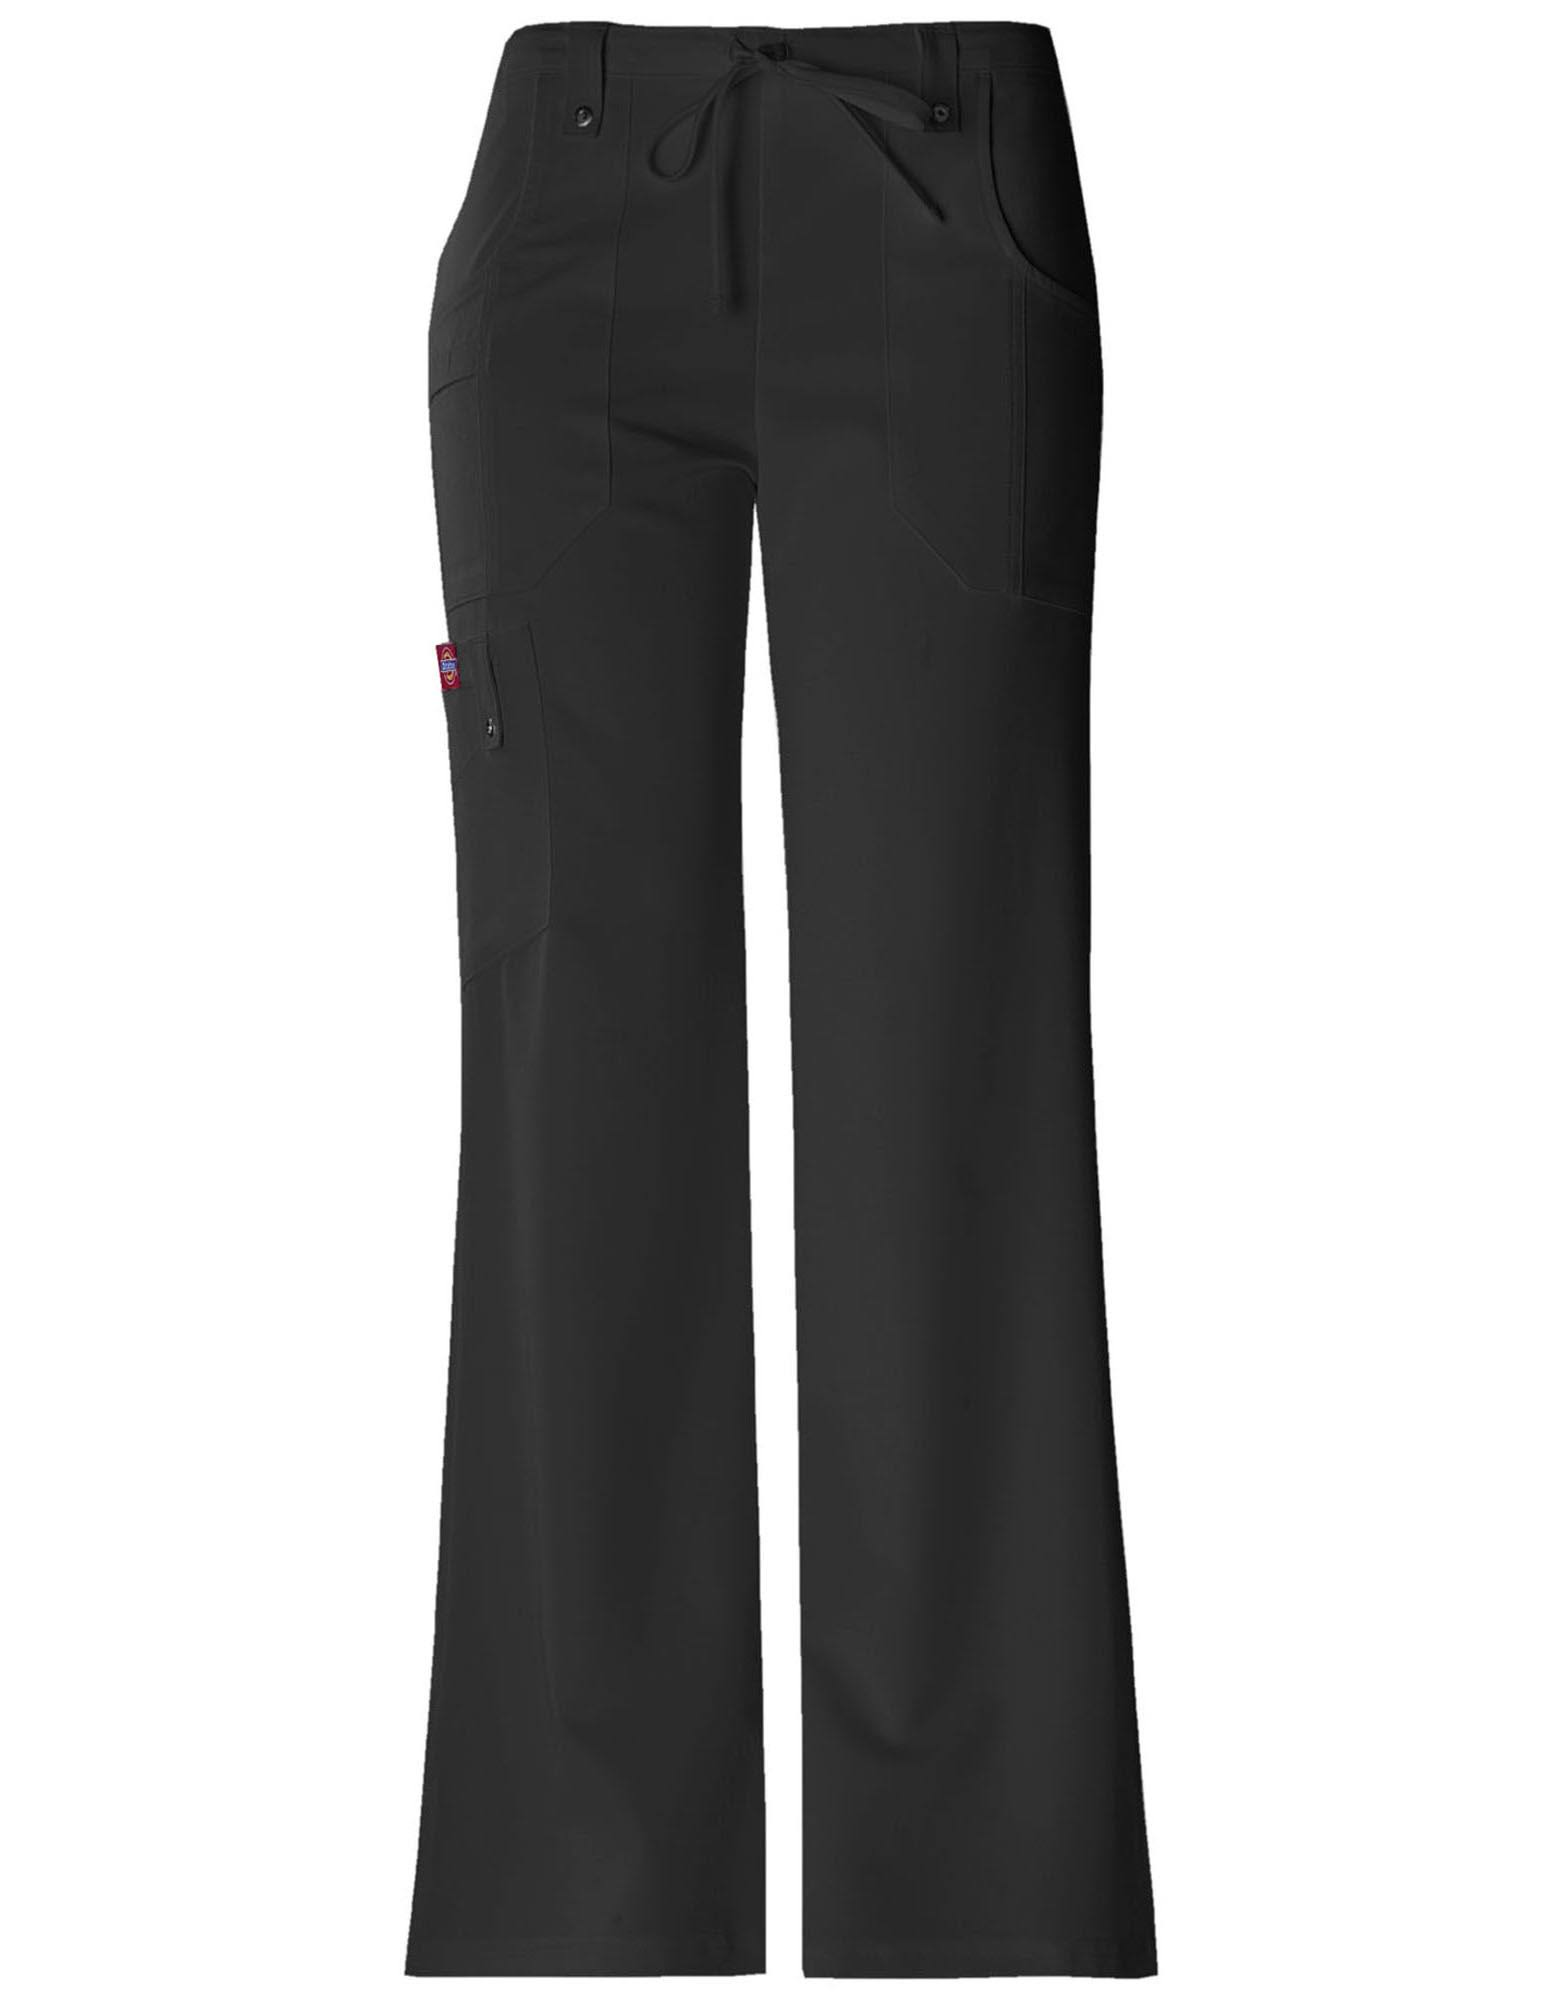 Dickies Women's Xtreme Stretch Tall Drawstring Scrub Pant - S - Black